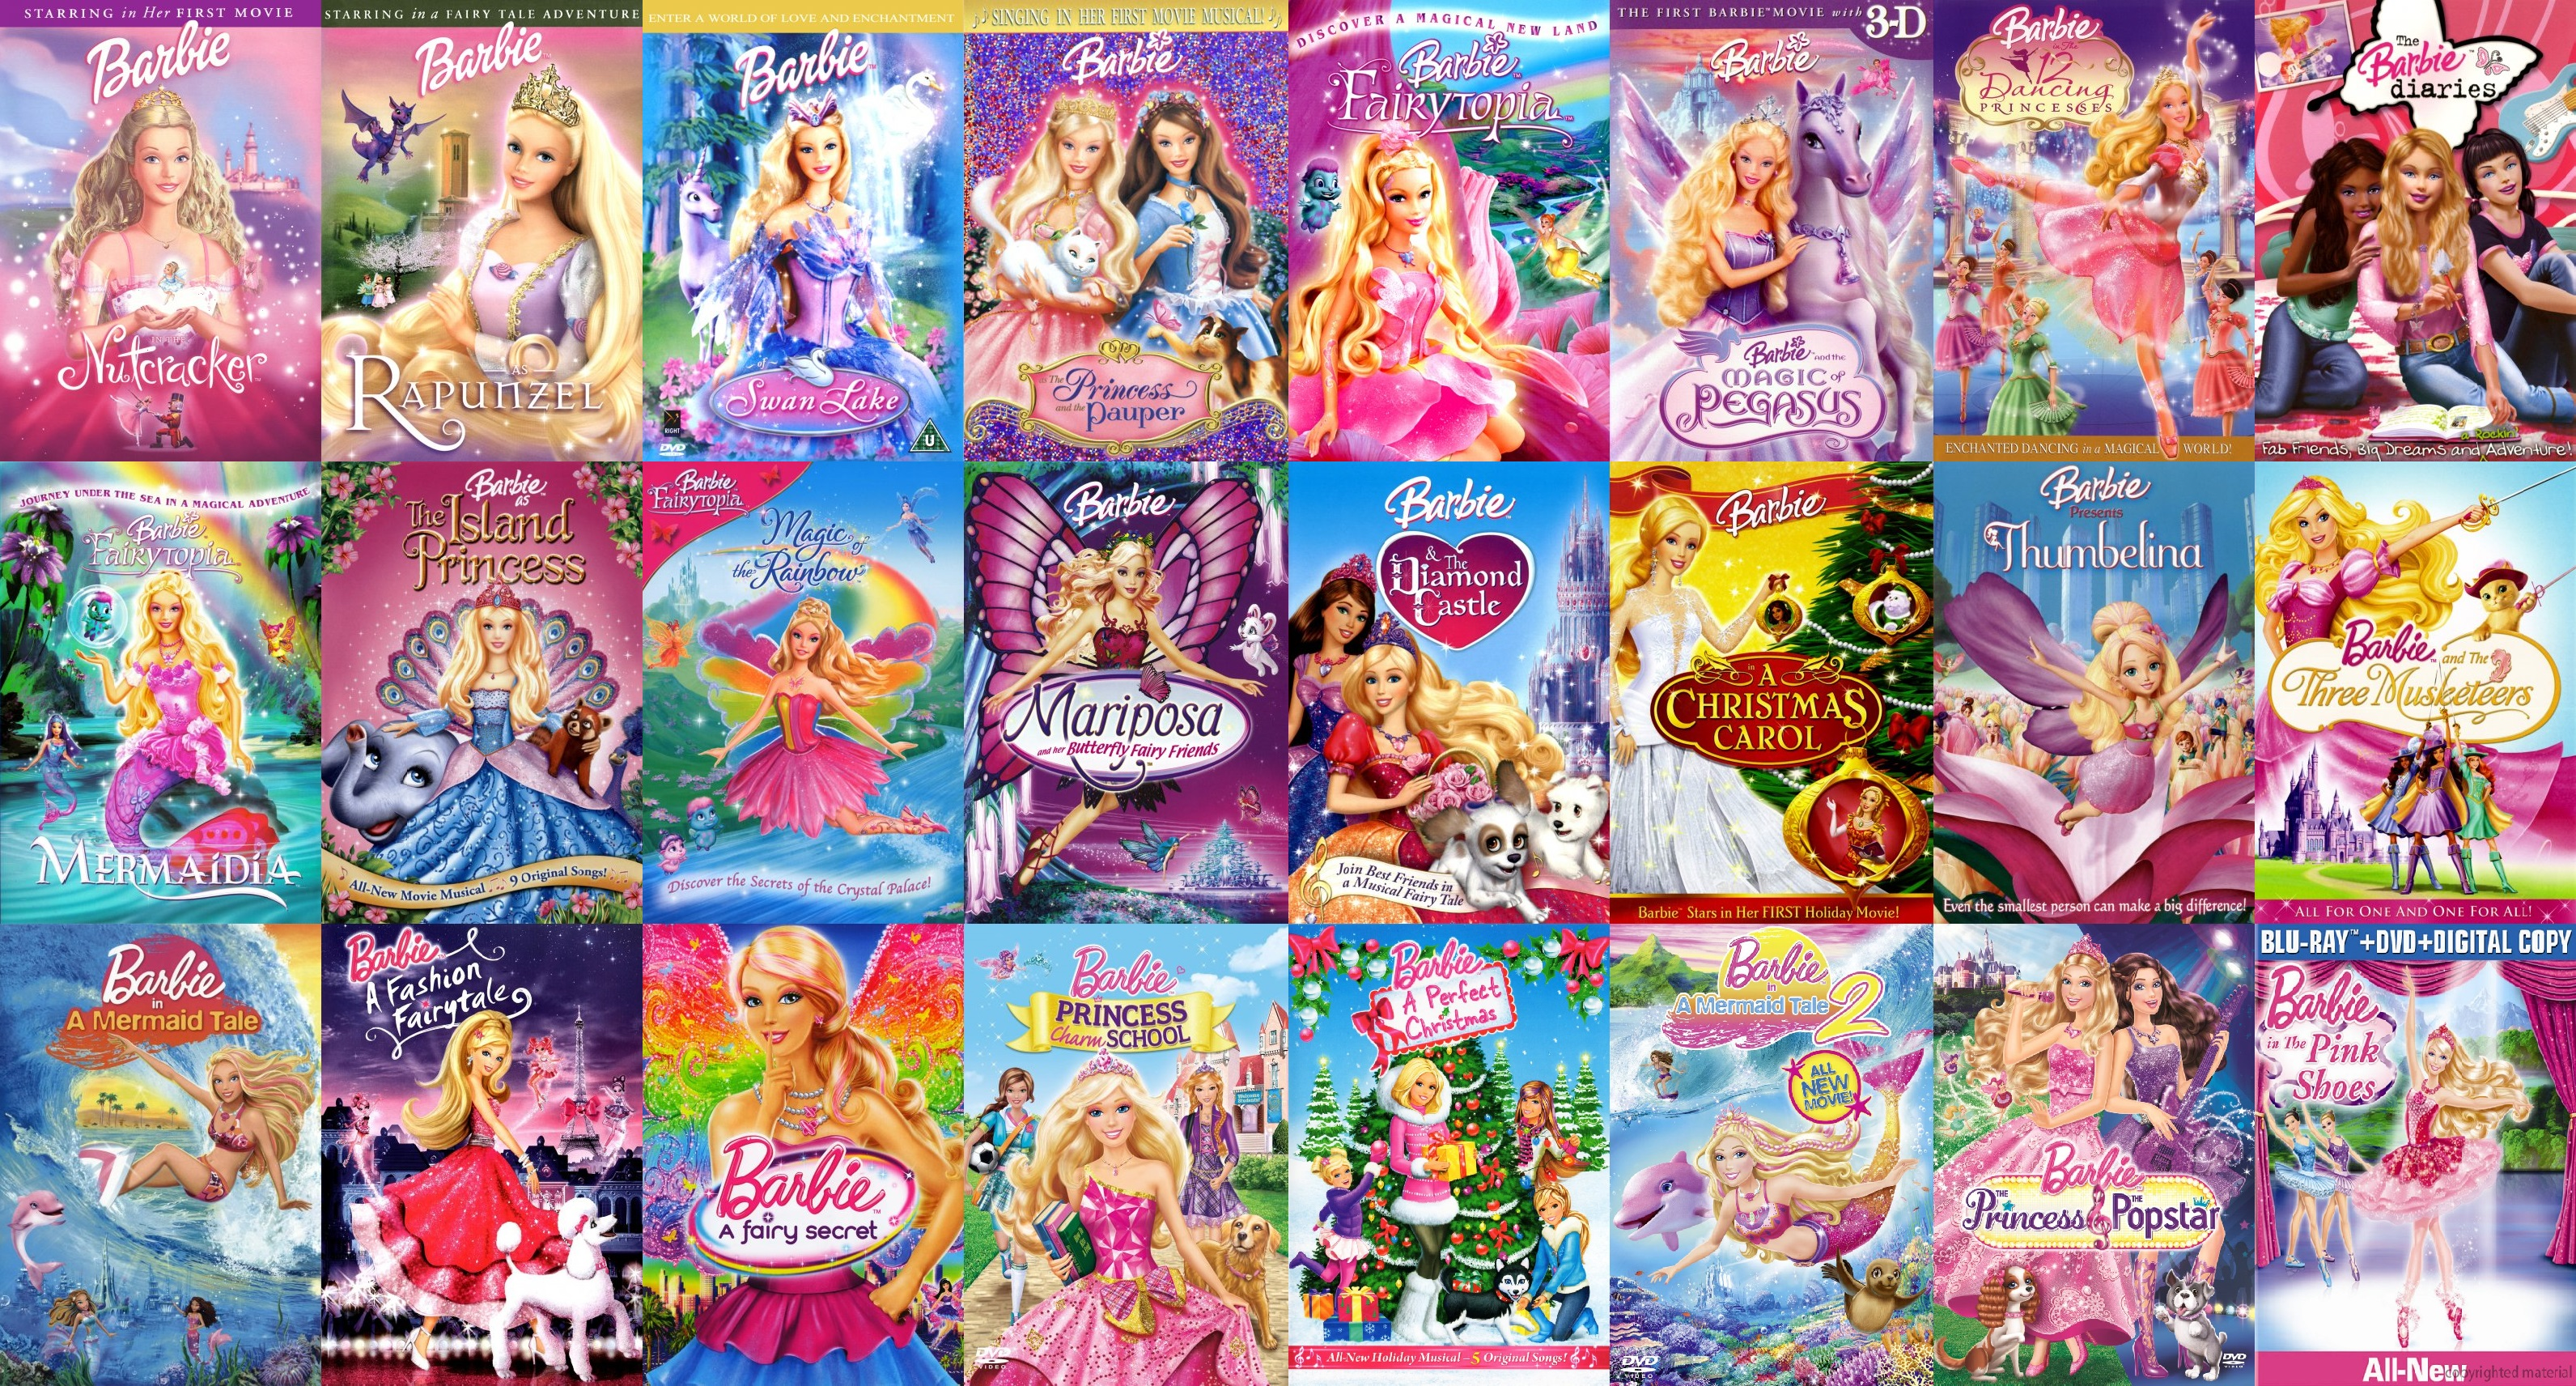 Fil:All-Barbie-movies-barbie-movies-33033478-3183-1712.jpg - Norsk ...